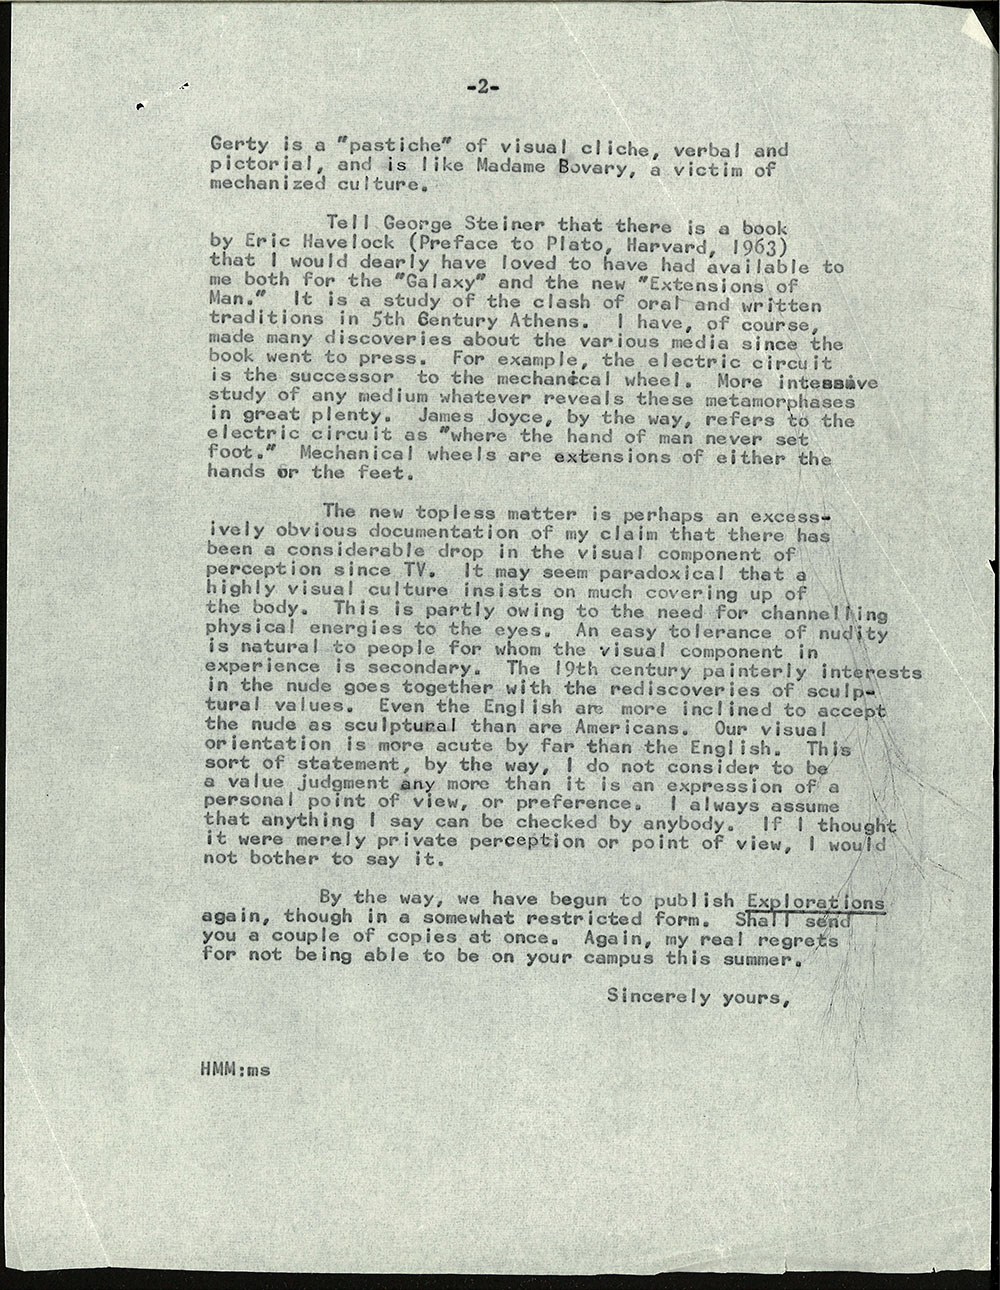 Letter dated July 3, 1964 to Michael Wolff (page 2)